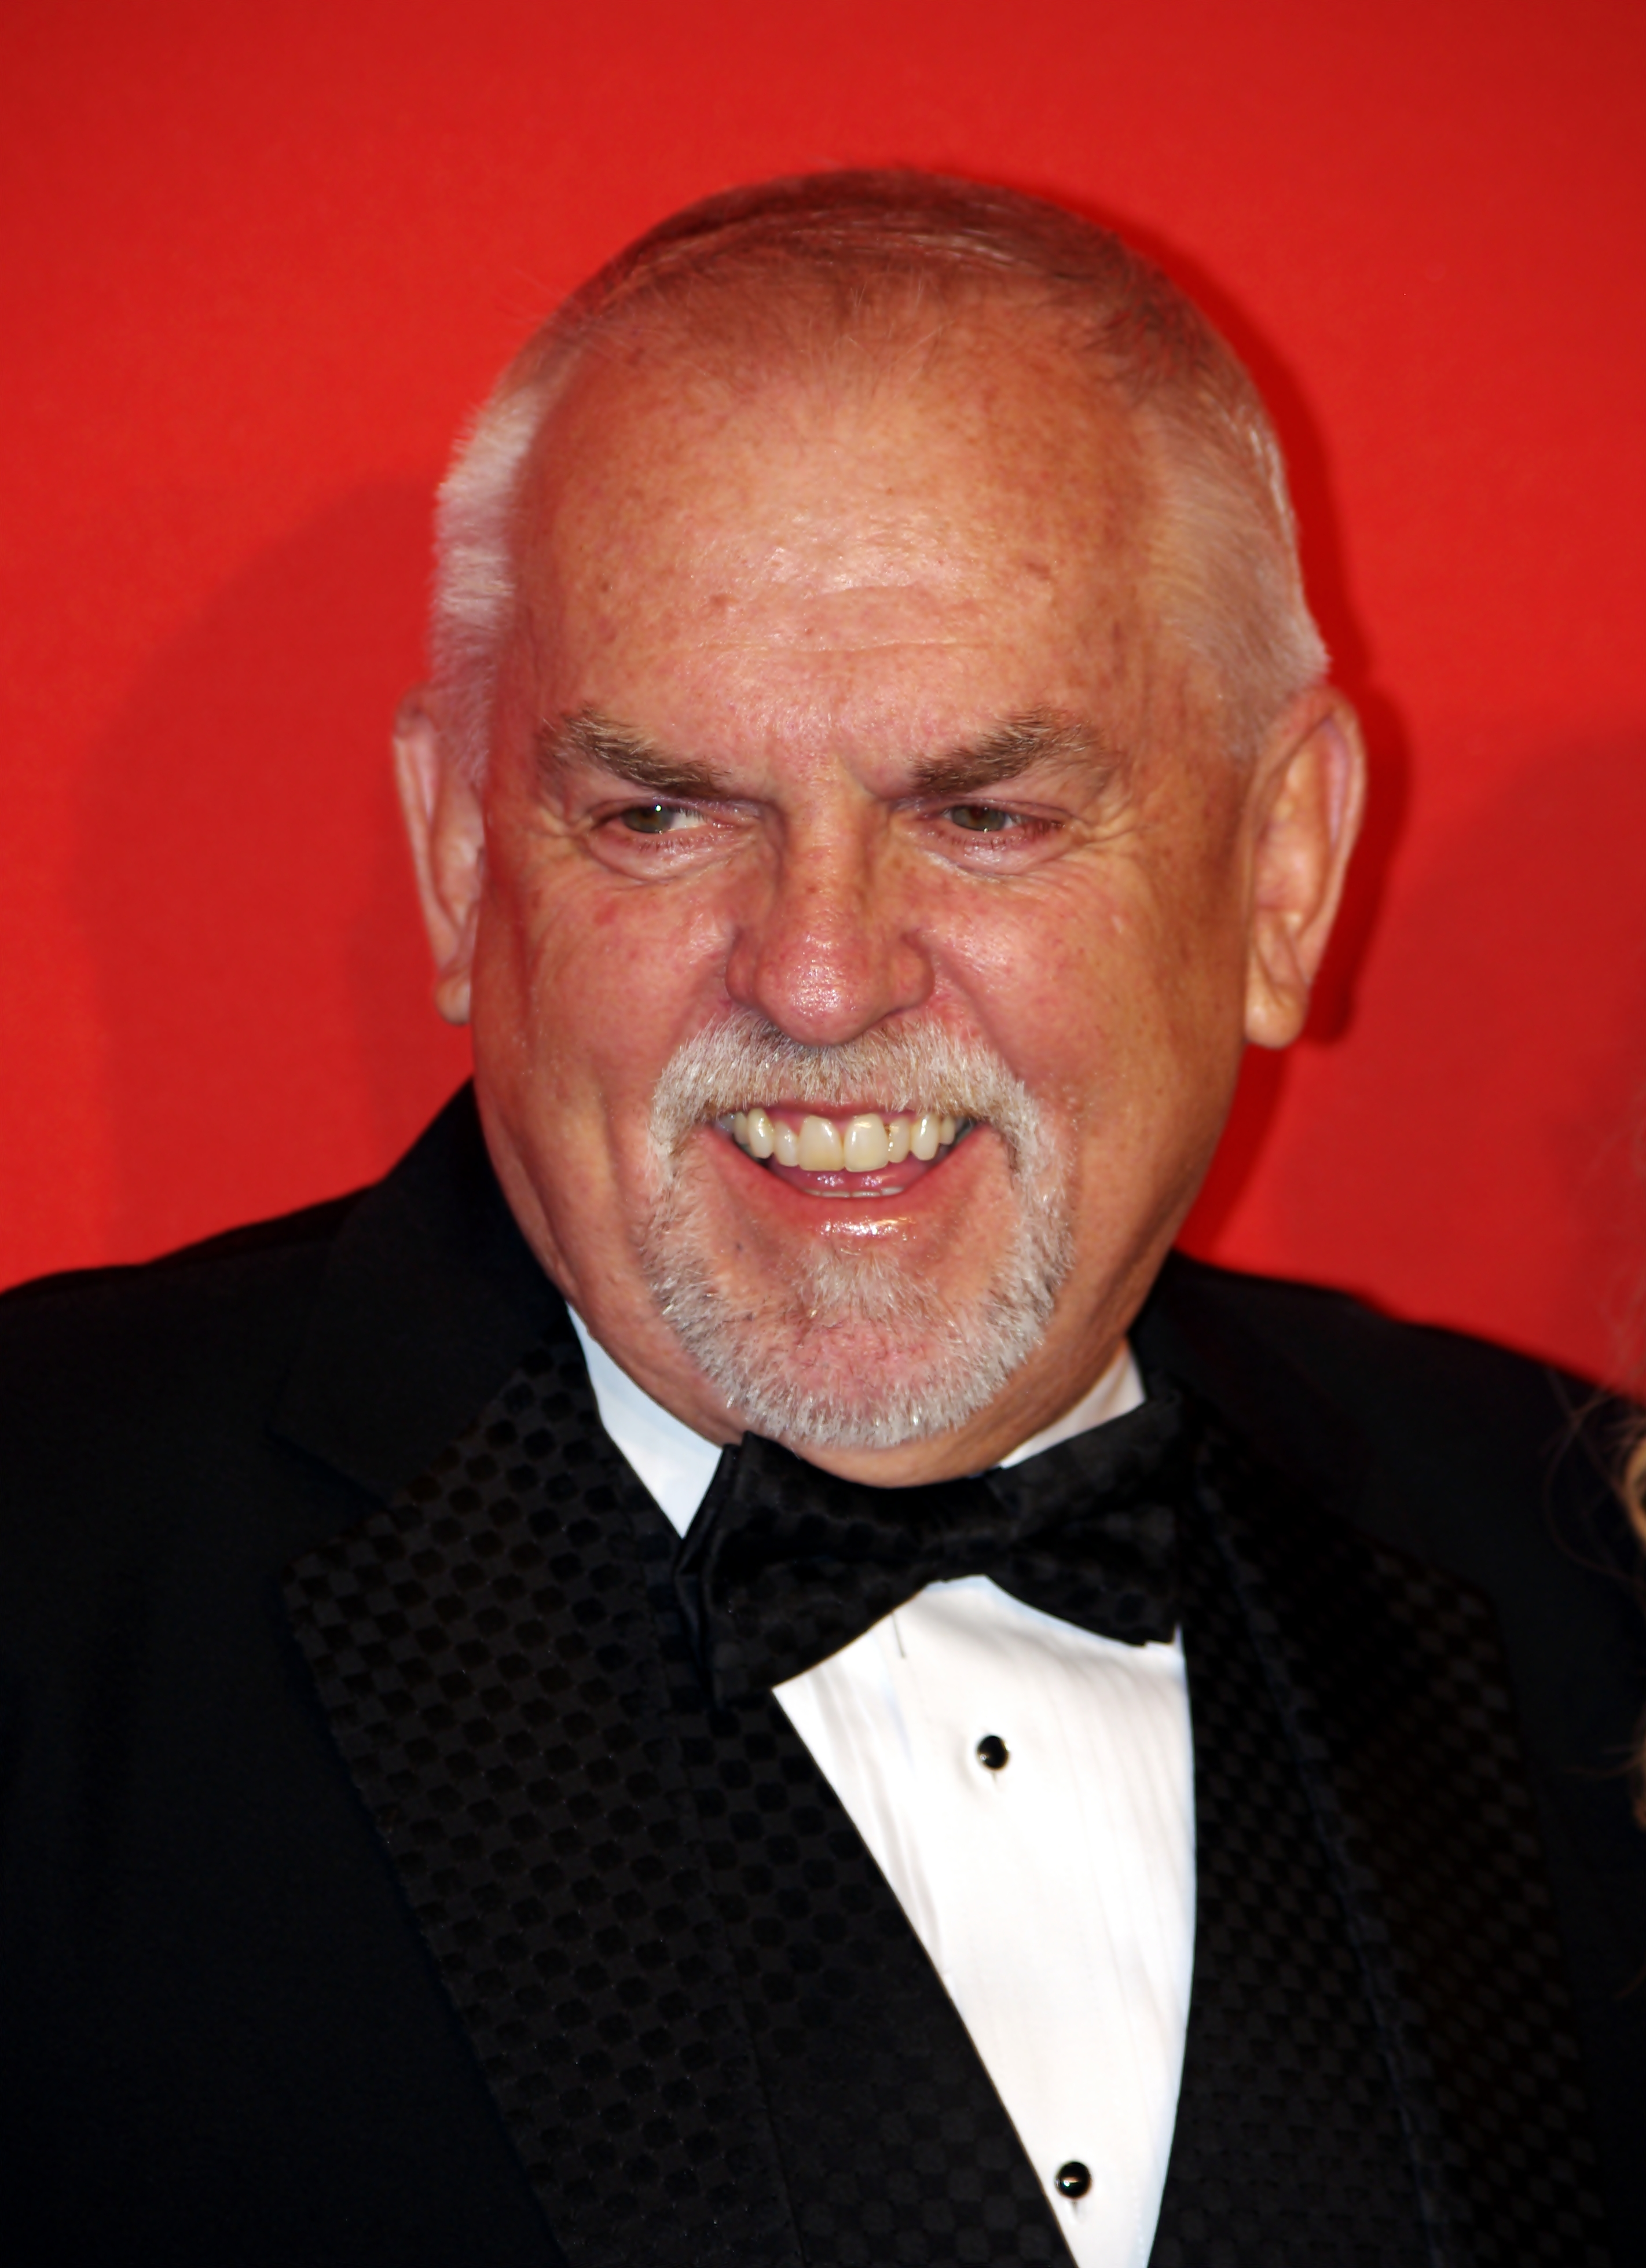 Ratzenberger at the 2011 [[Time 100]] gala